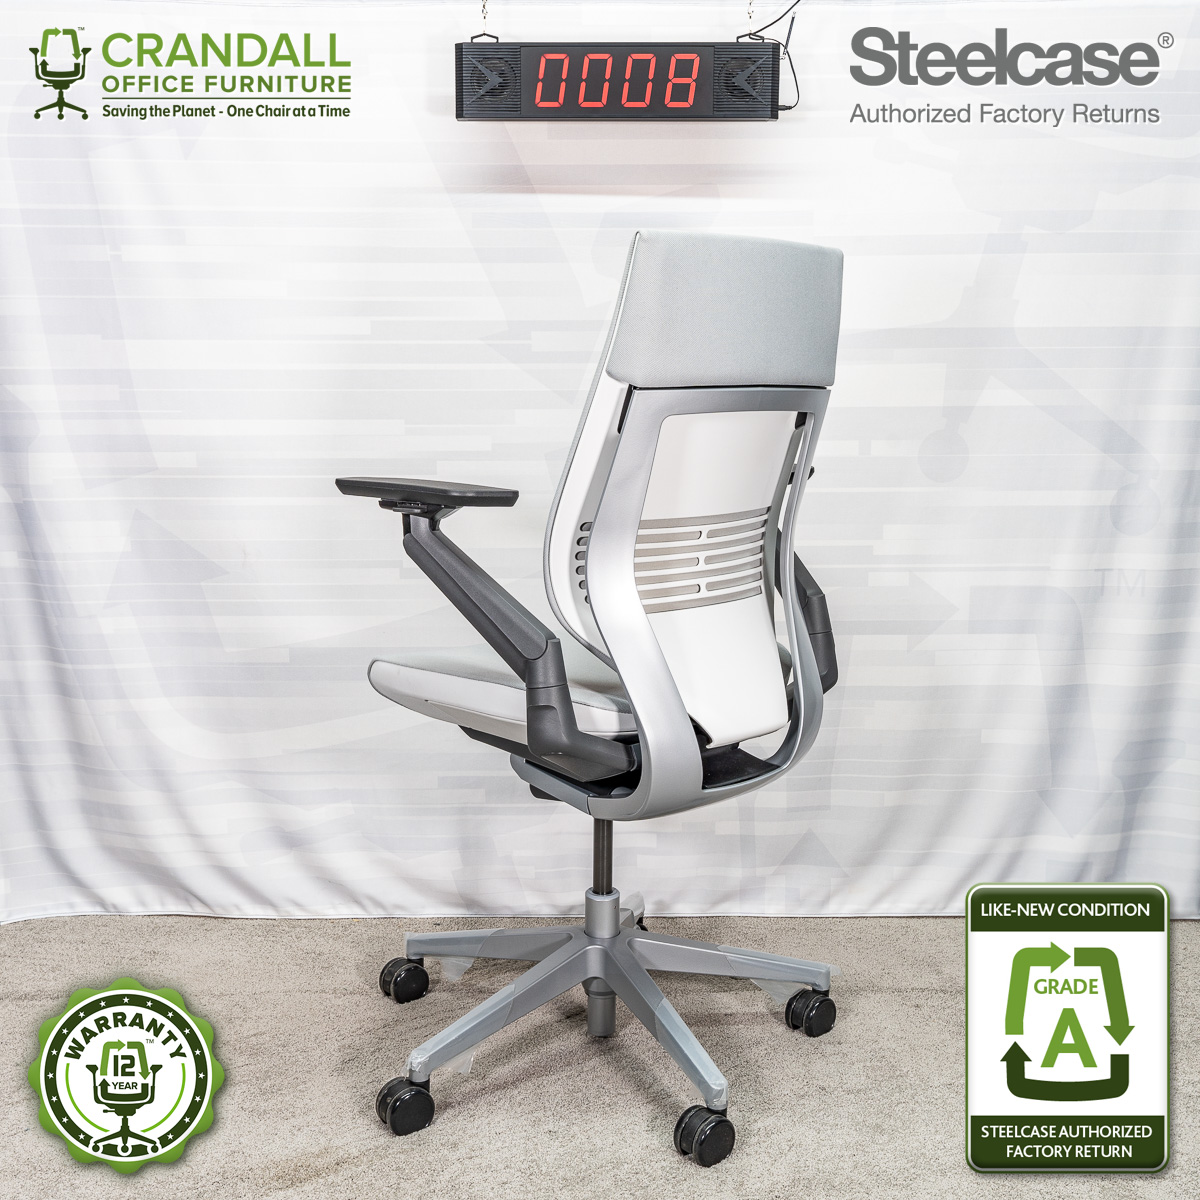 Steelcase Authorized Factory Returns - Steelcase Gesture - 0008 2